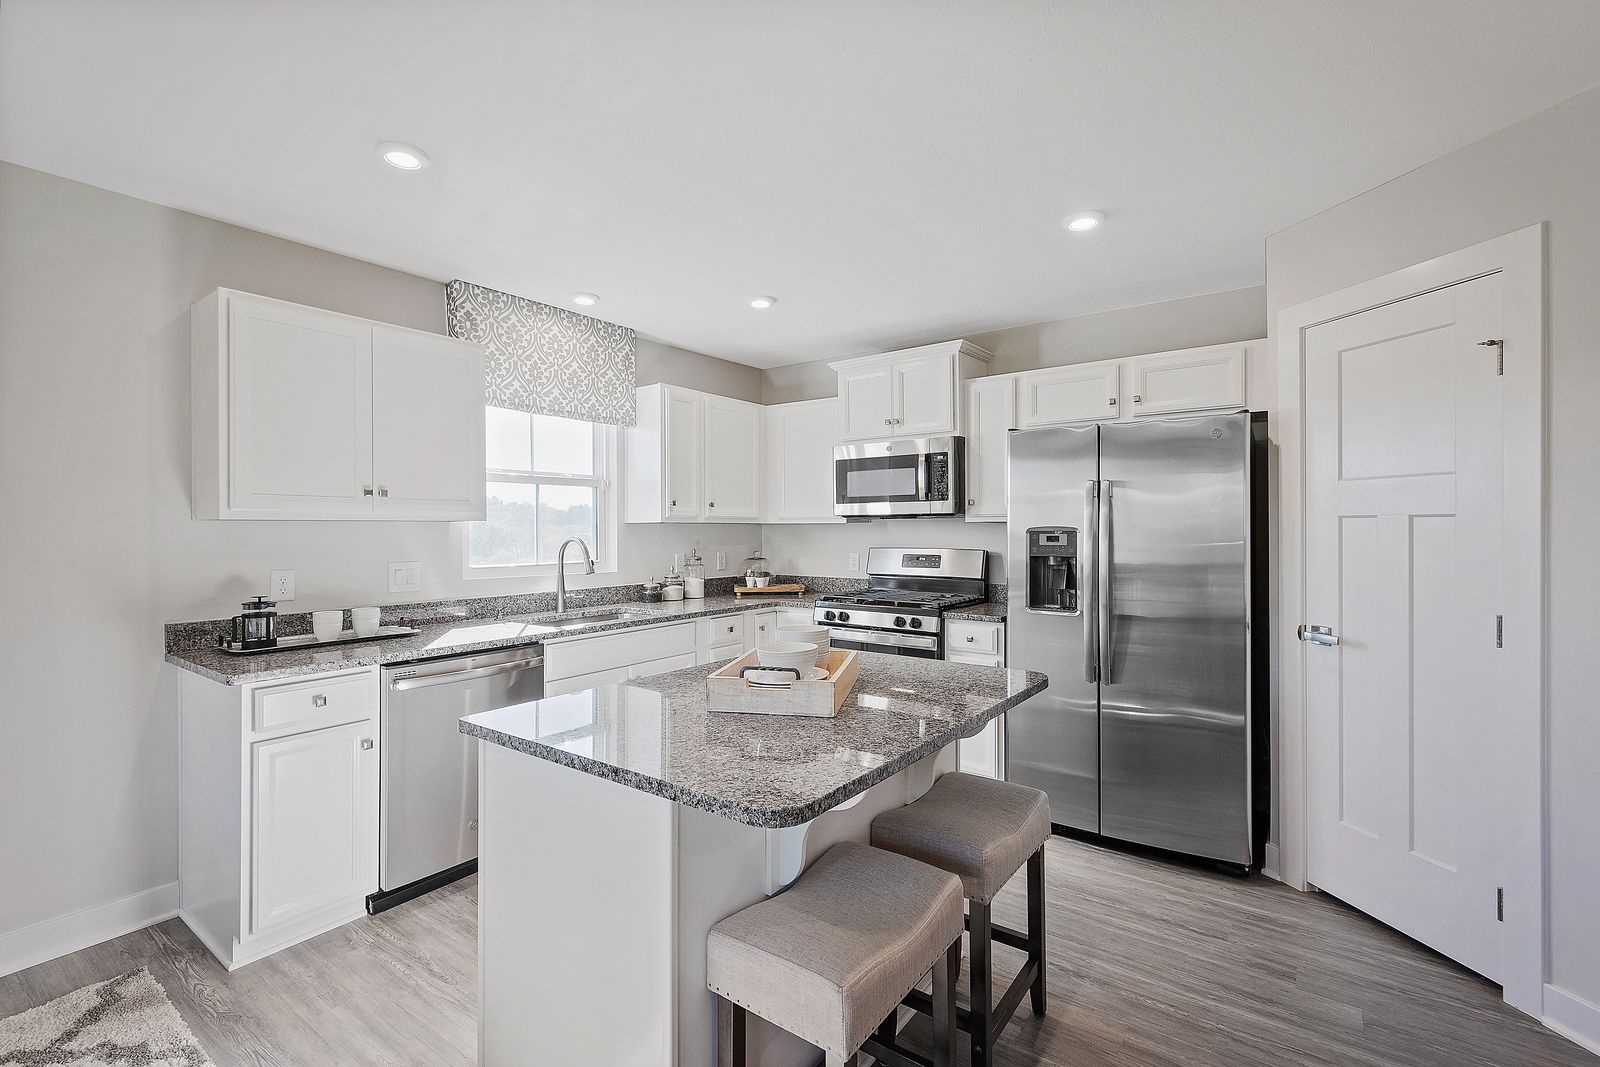 Kitchen featured in the Barbados Isle By Ryan Homes in Pittsburgh, PA